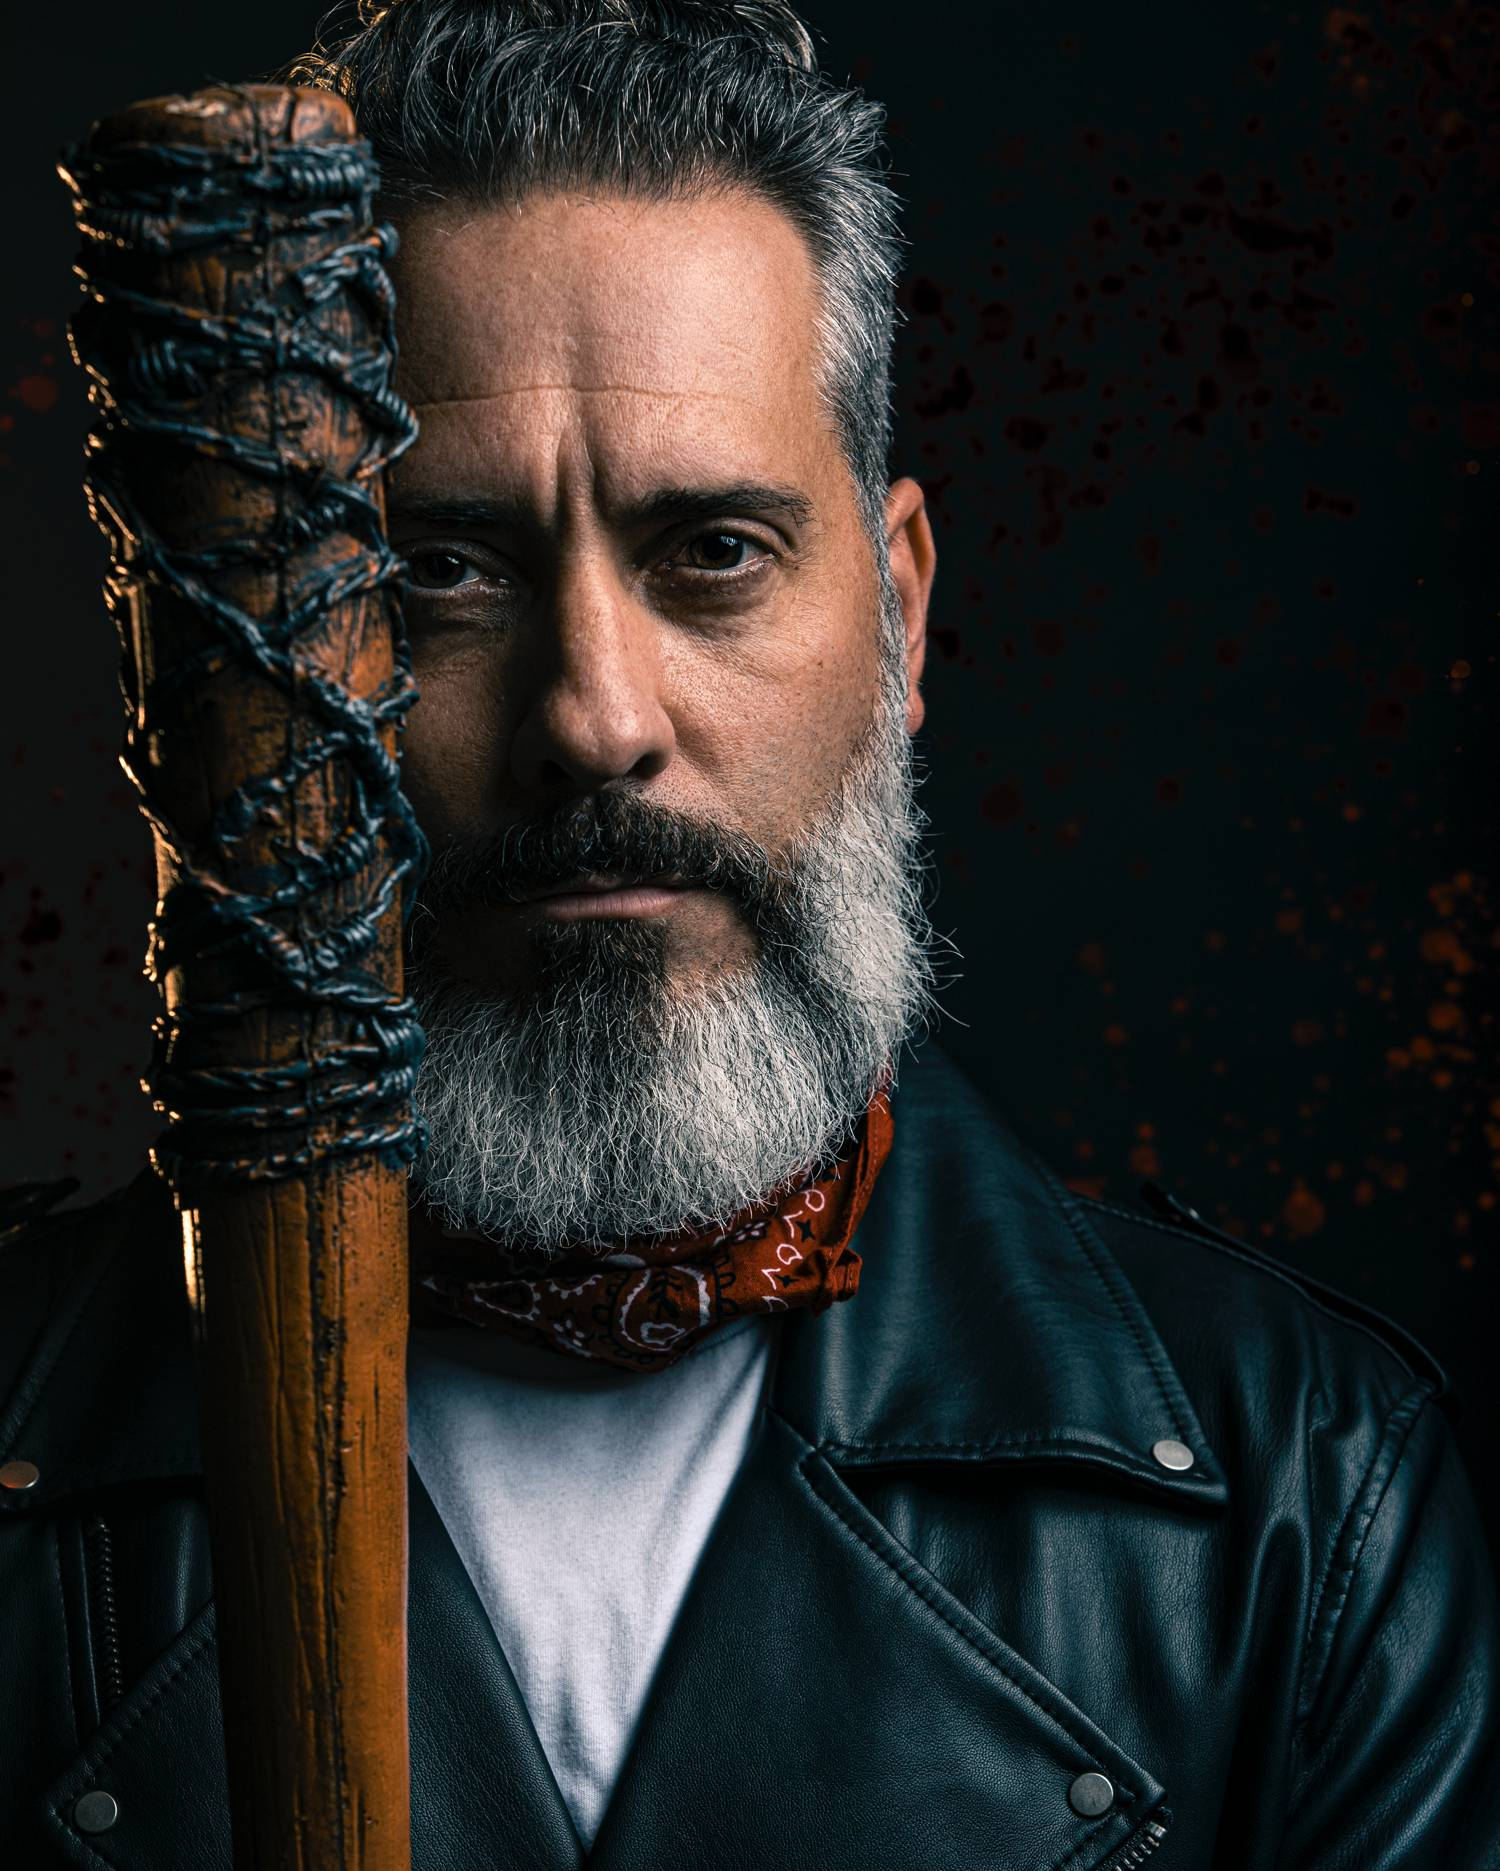 In this styled tribute photograph by Alexander Worth of Jawfox Photography, a man cosplays Negan from The Walking Dead, wearing a leather jacket and carrying the villain's barbed wire-wrapped bat, Lucille.